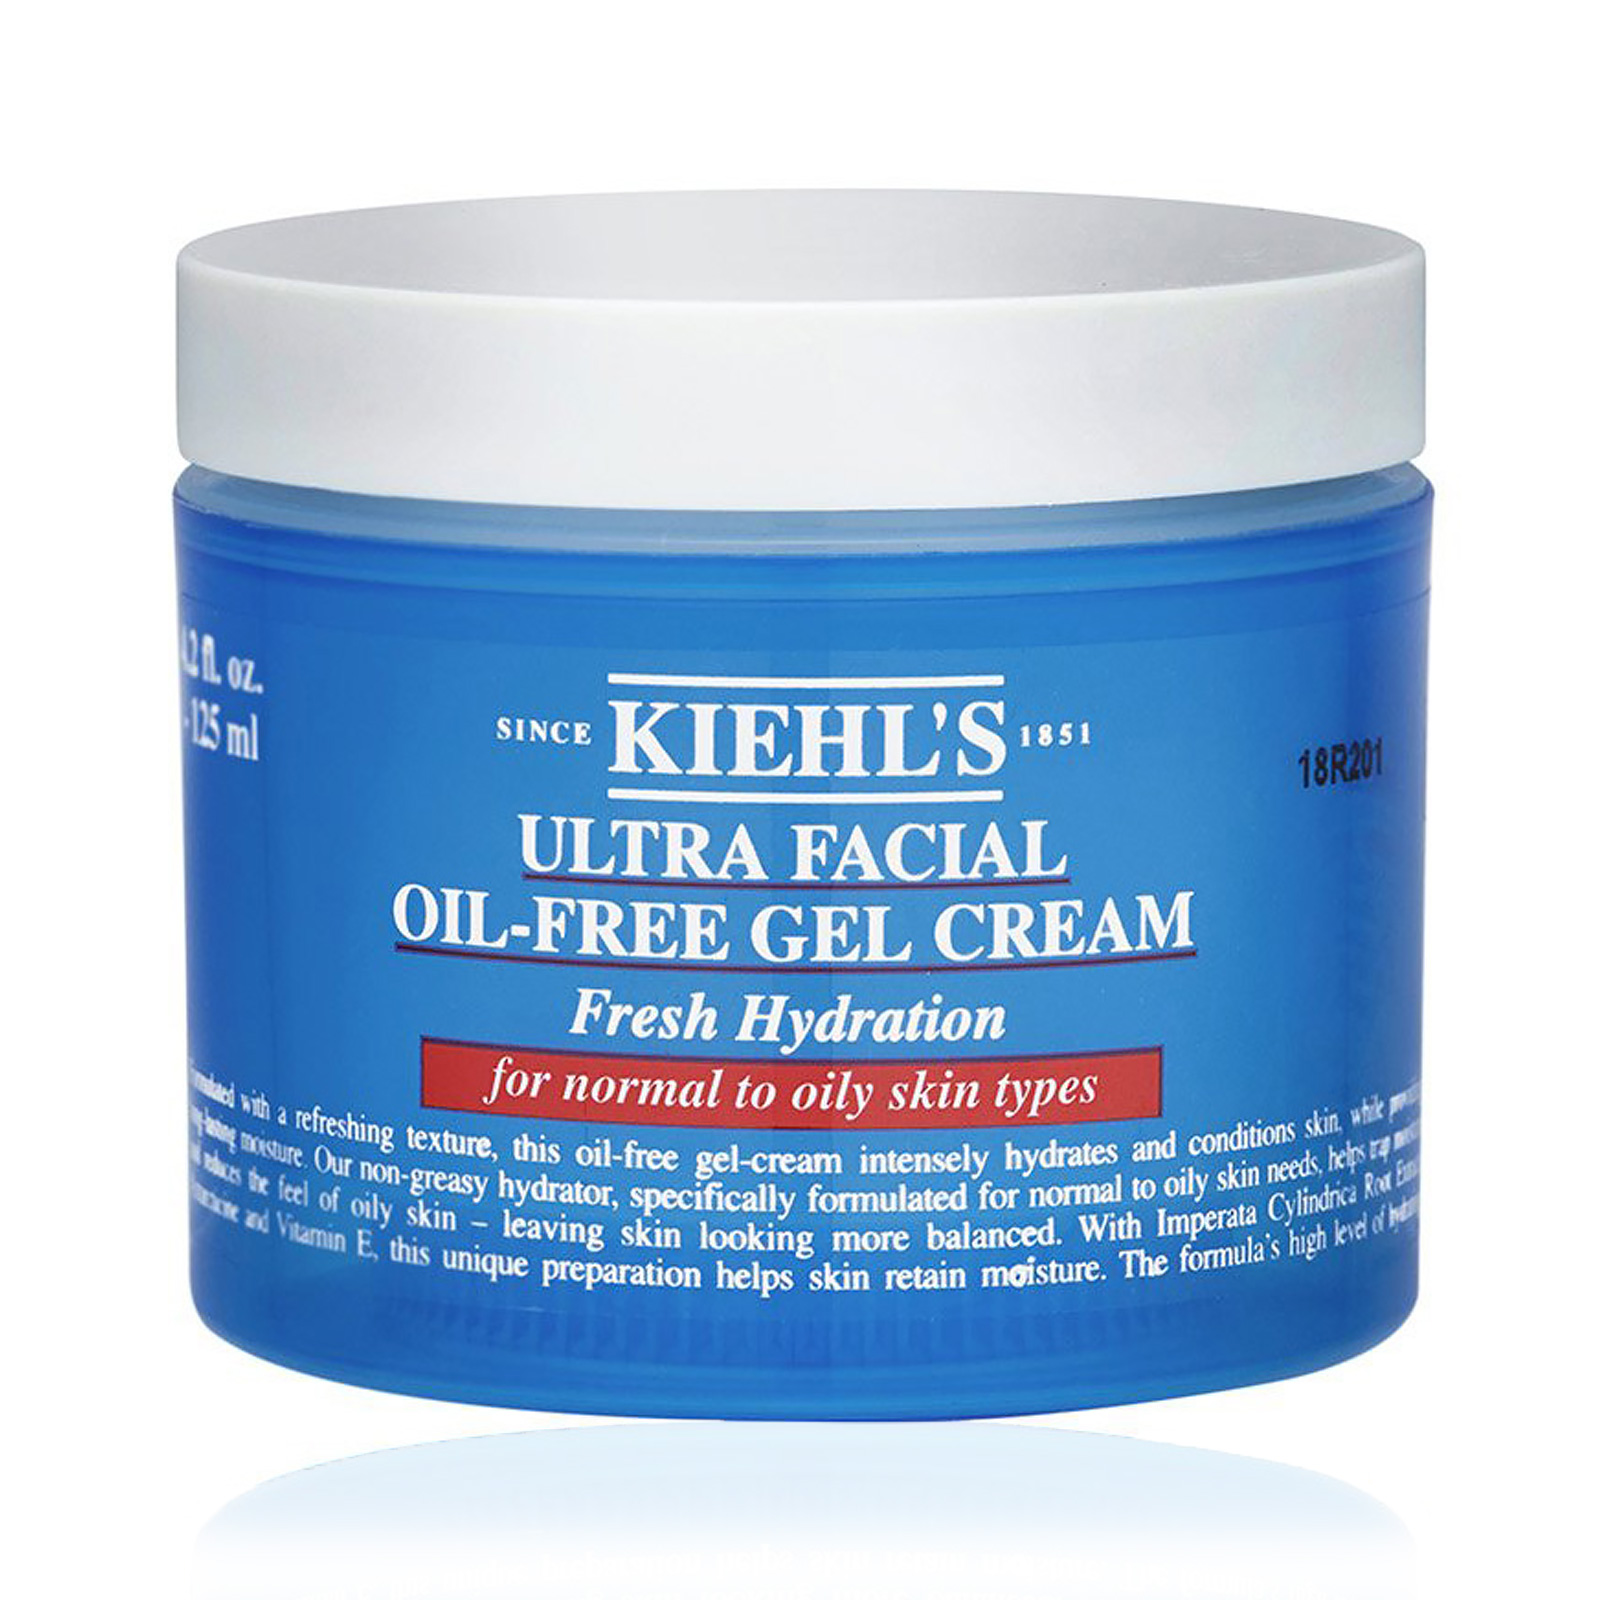 Ultra Facial Oil-Free Gel Cream (For Normal To Oily Skin)